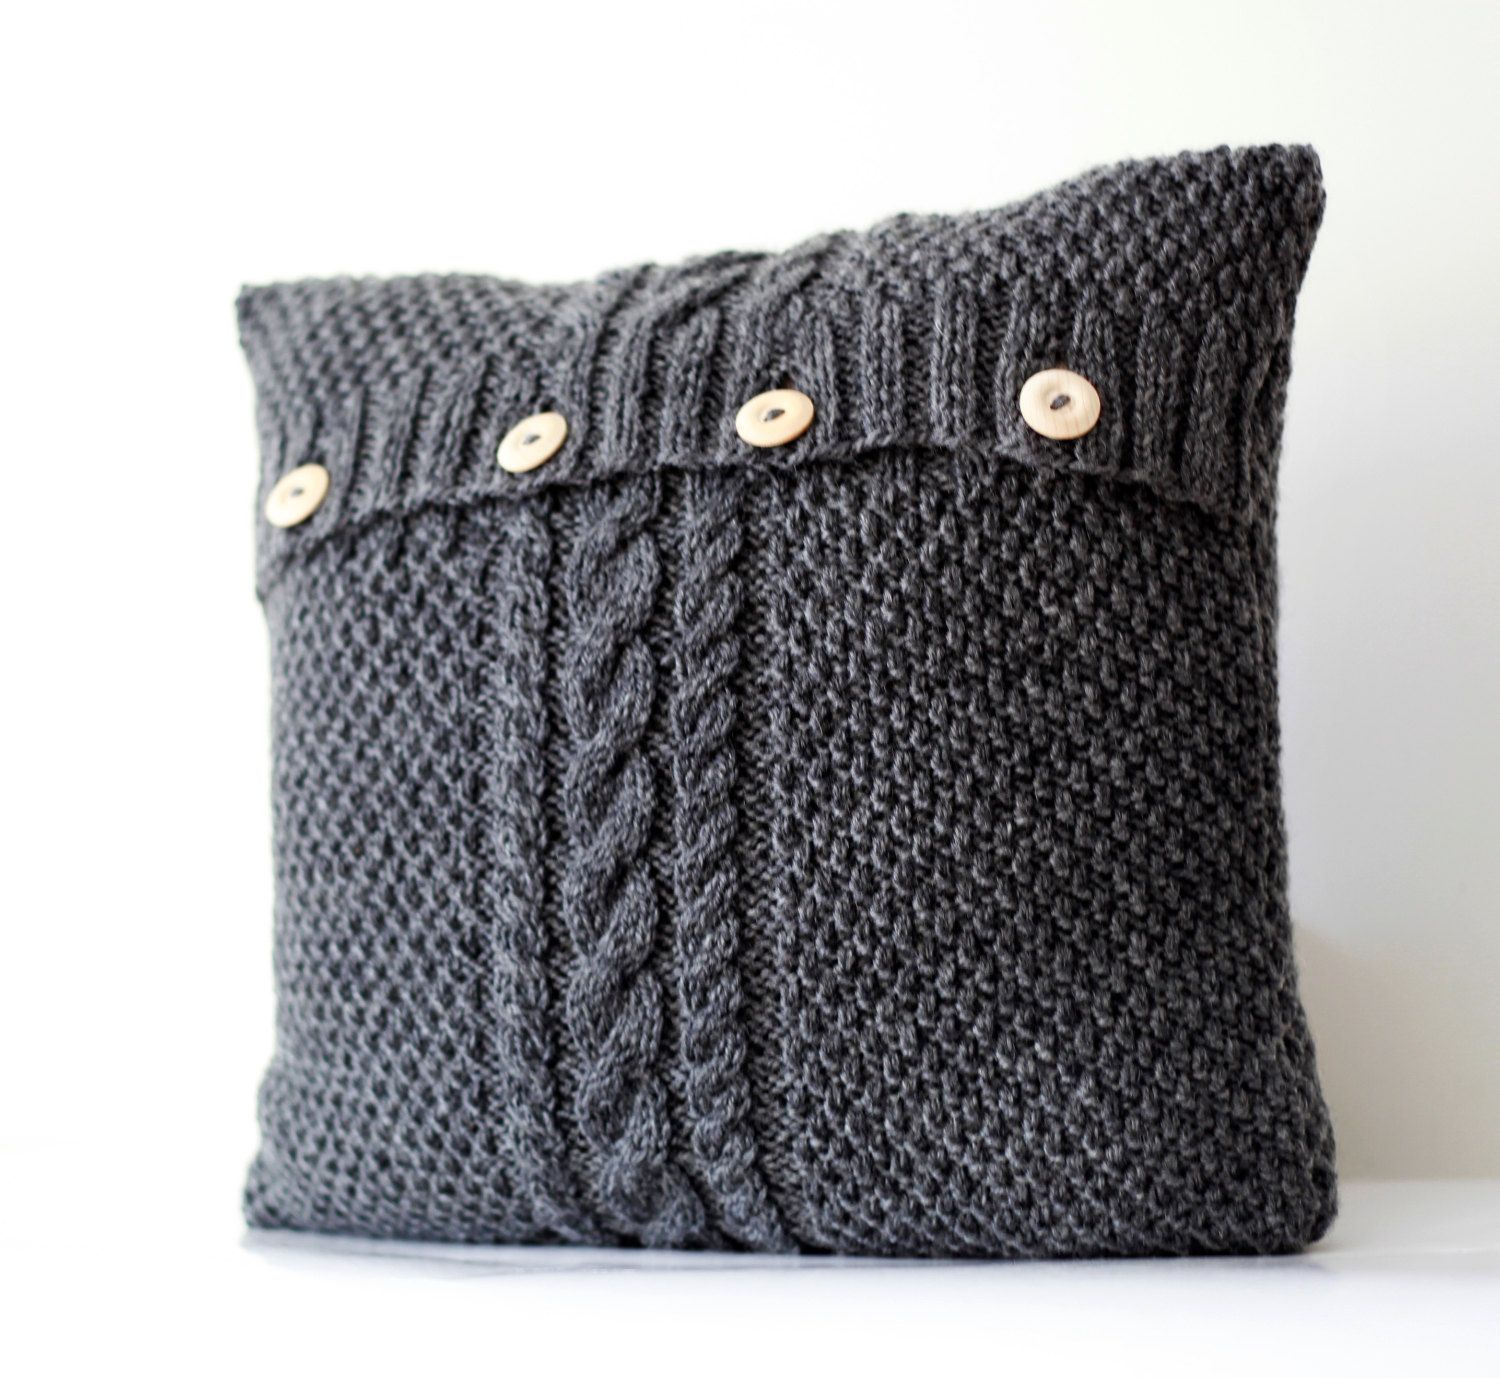 Knitted gray  pillow cover - cable knit decorative pillows case - handmade home decor 16x16.